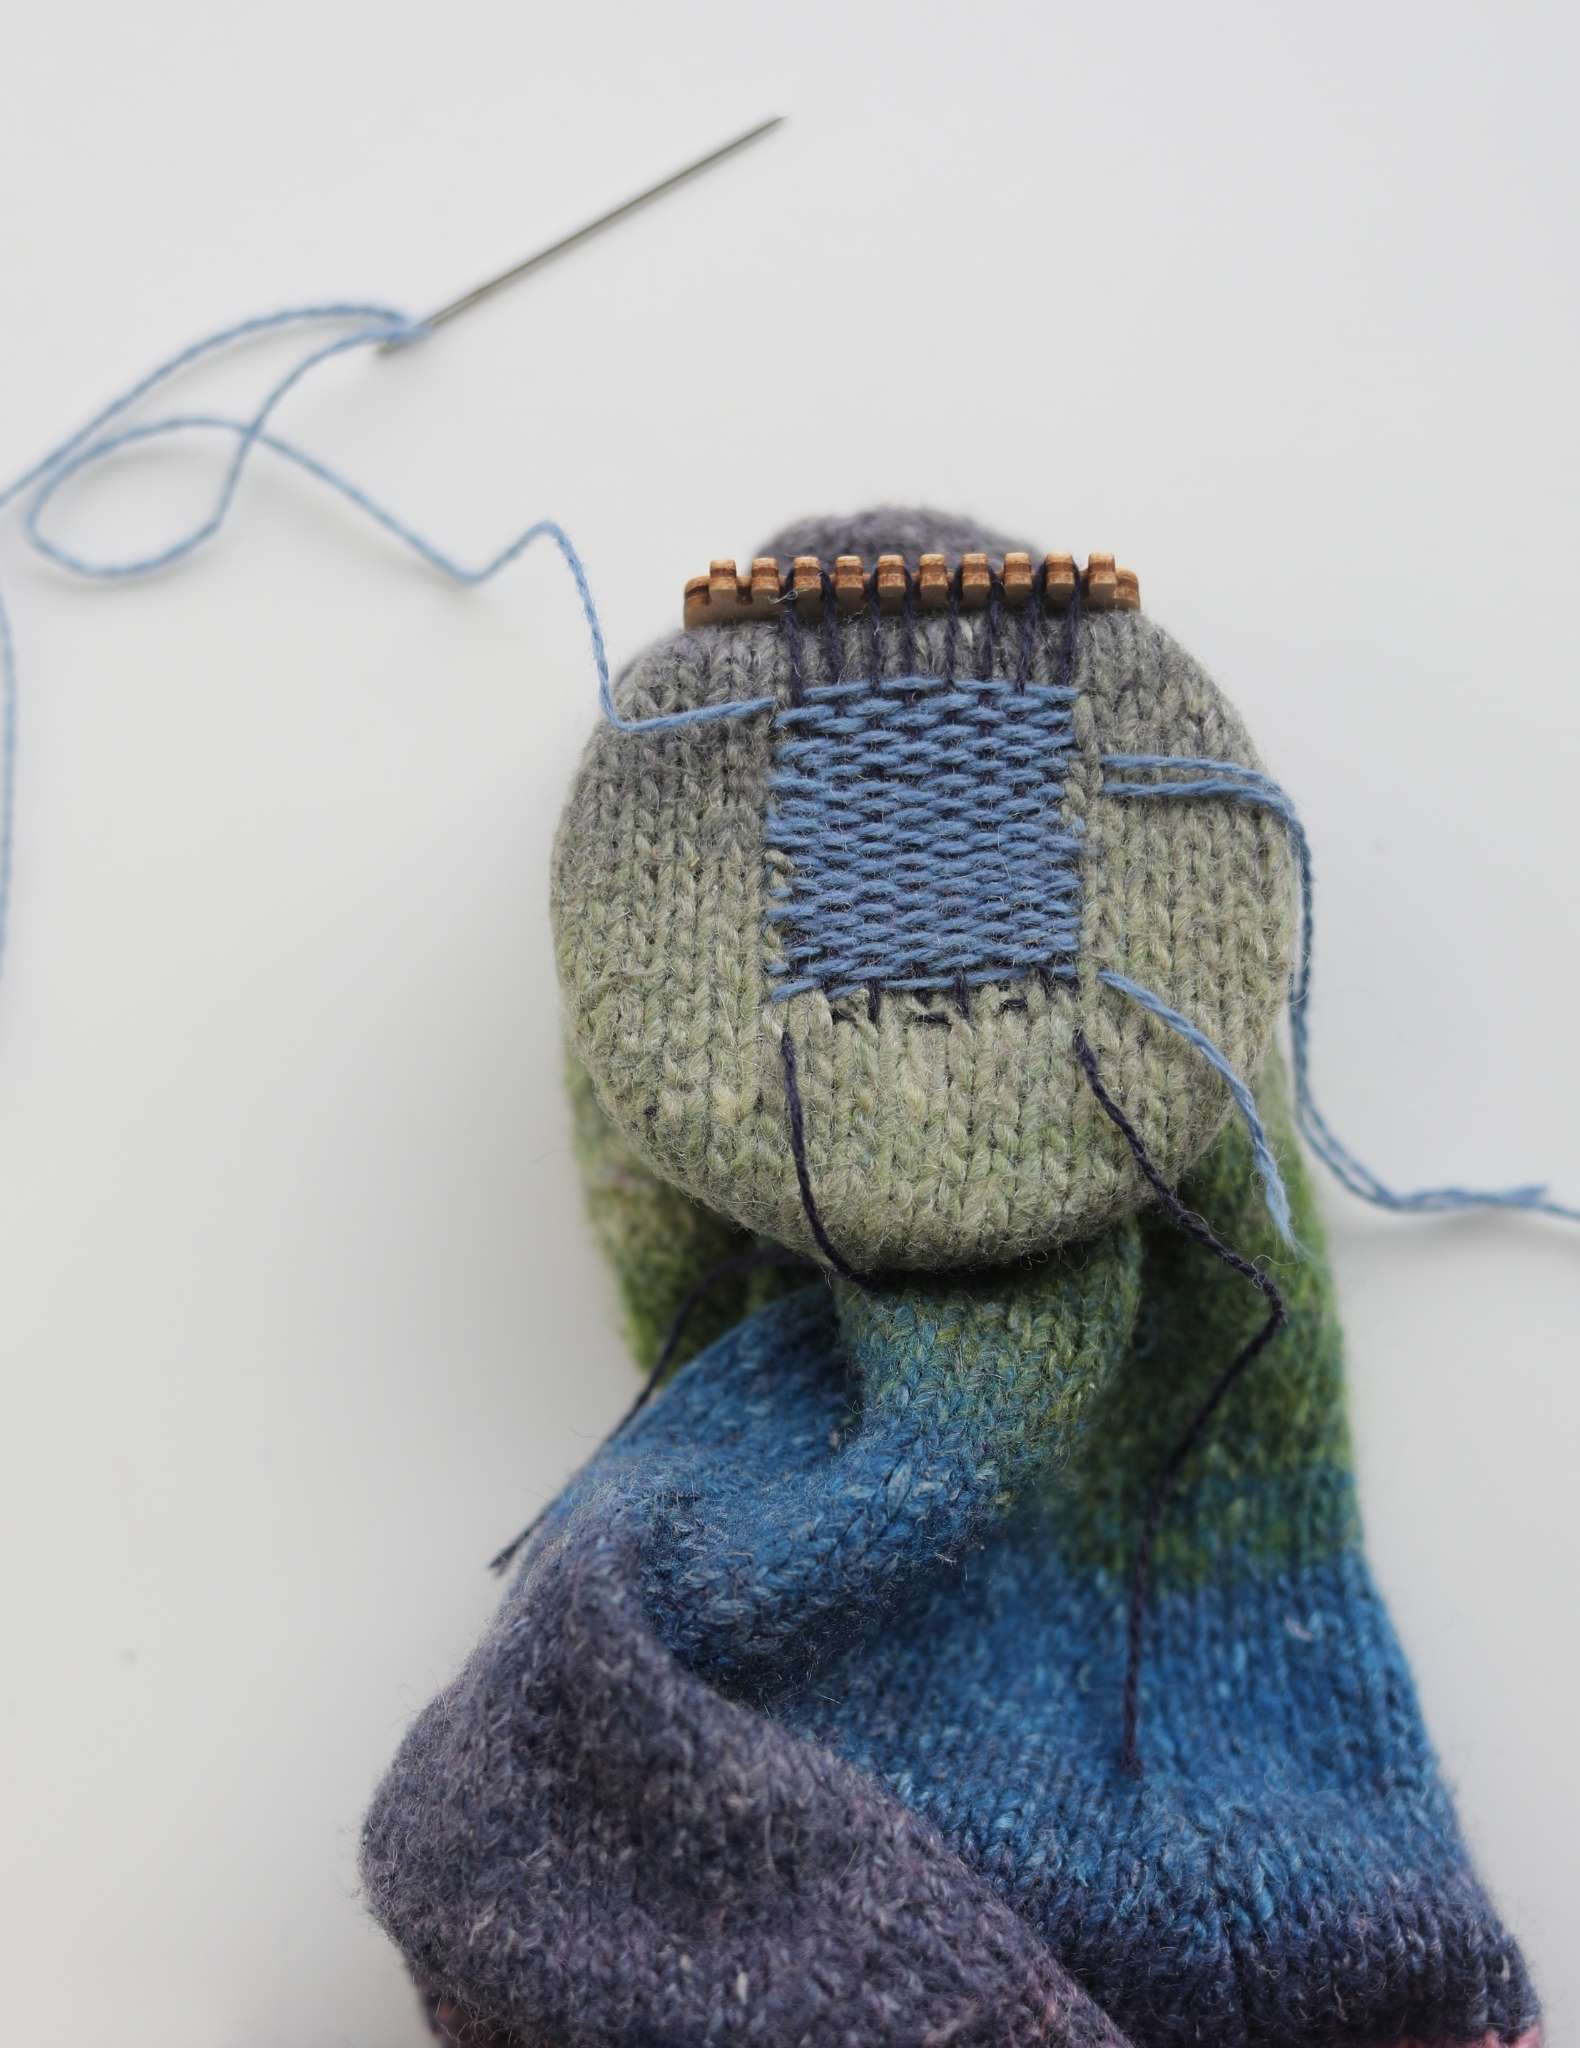 The entire hole has now been covered by both vertical and horizontal strands, creating a dense fabric to cover the hole of the sock.